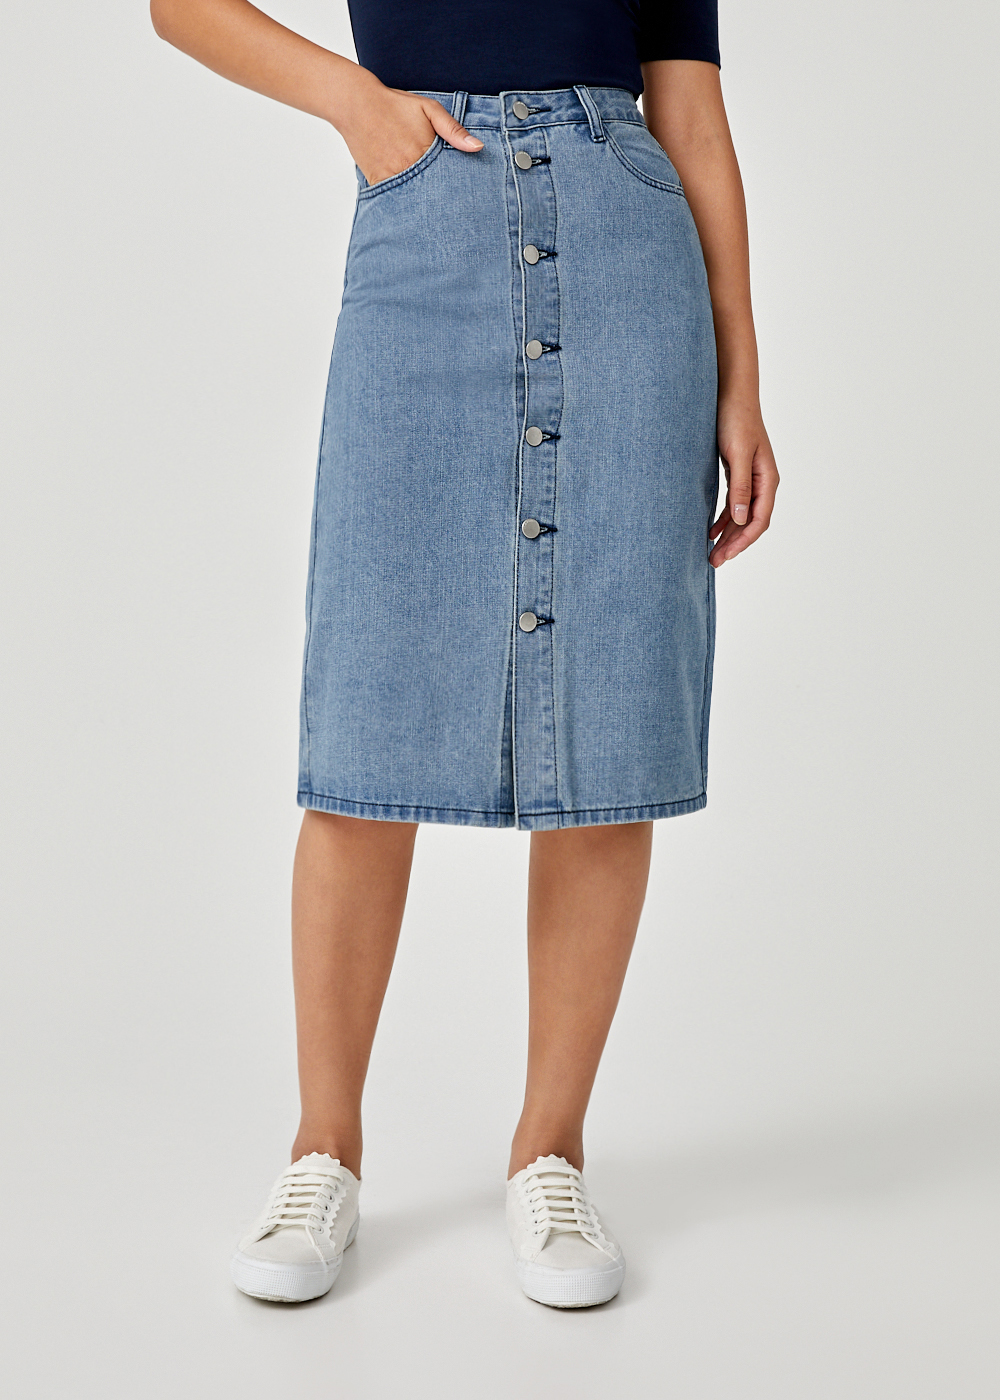 Jolie Denim Midi Skirt